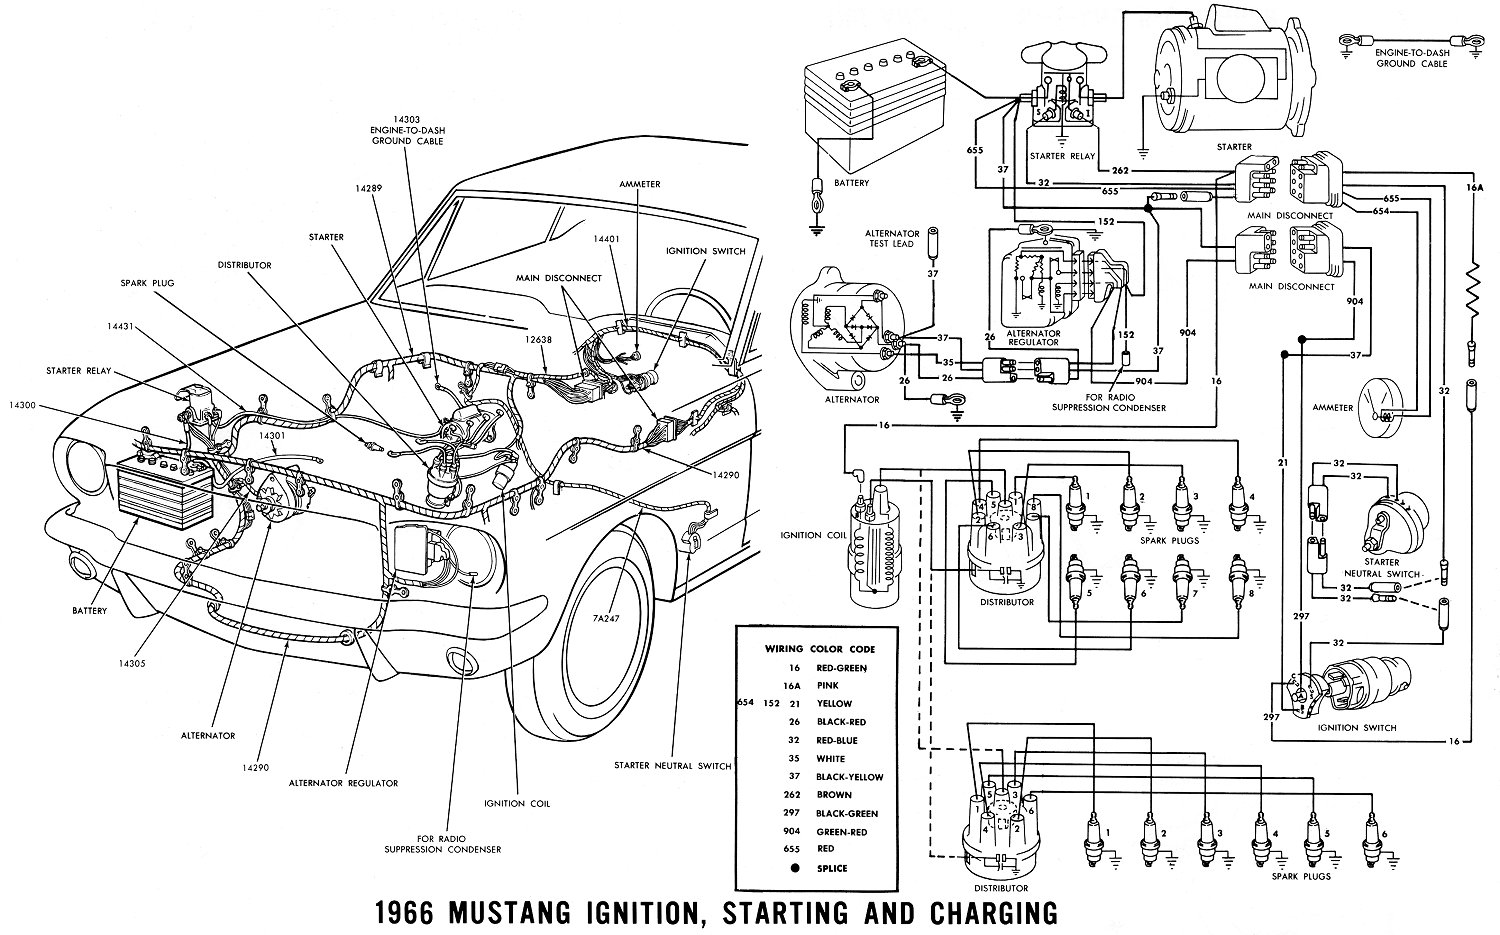 1966 Mustang Ignition Wiring Diagram on triumph spitfire ignition wiring diagram